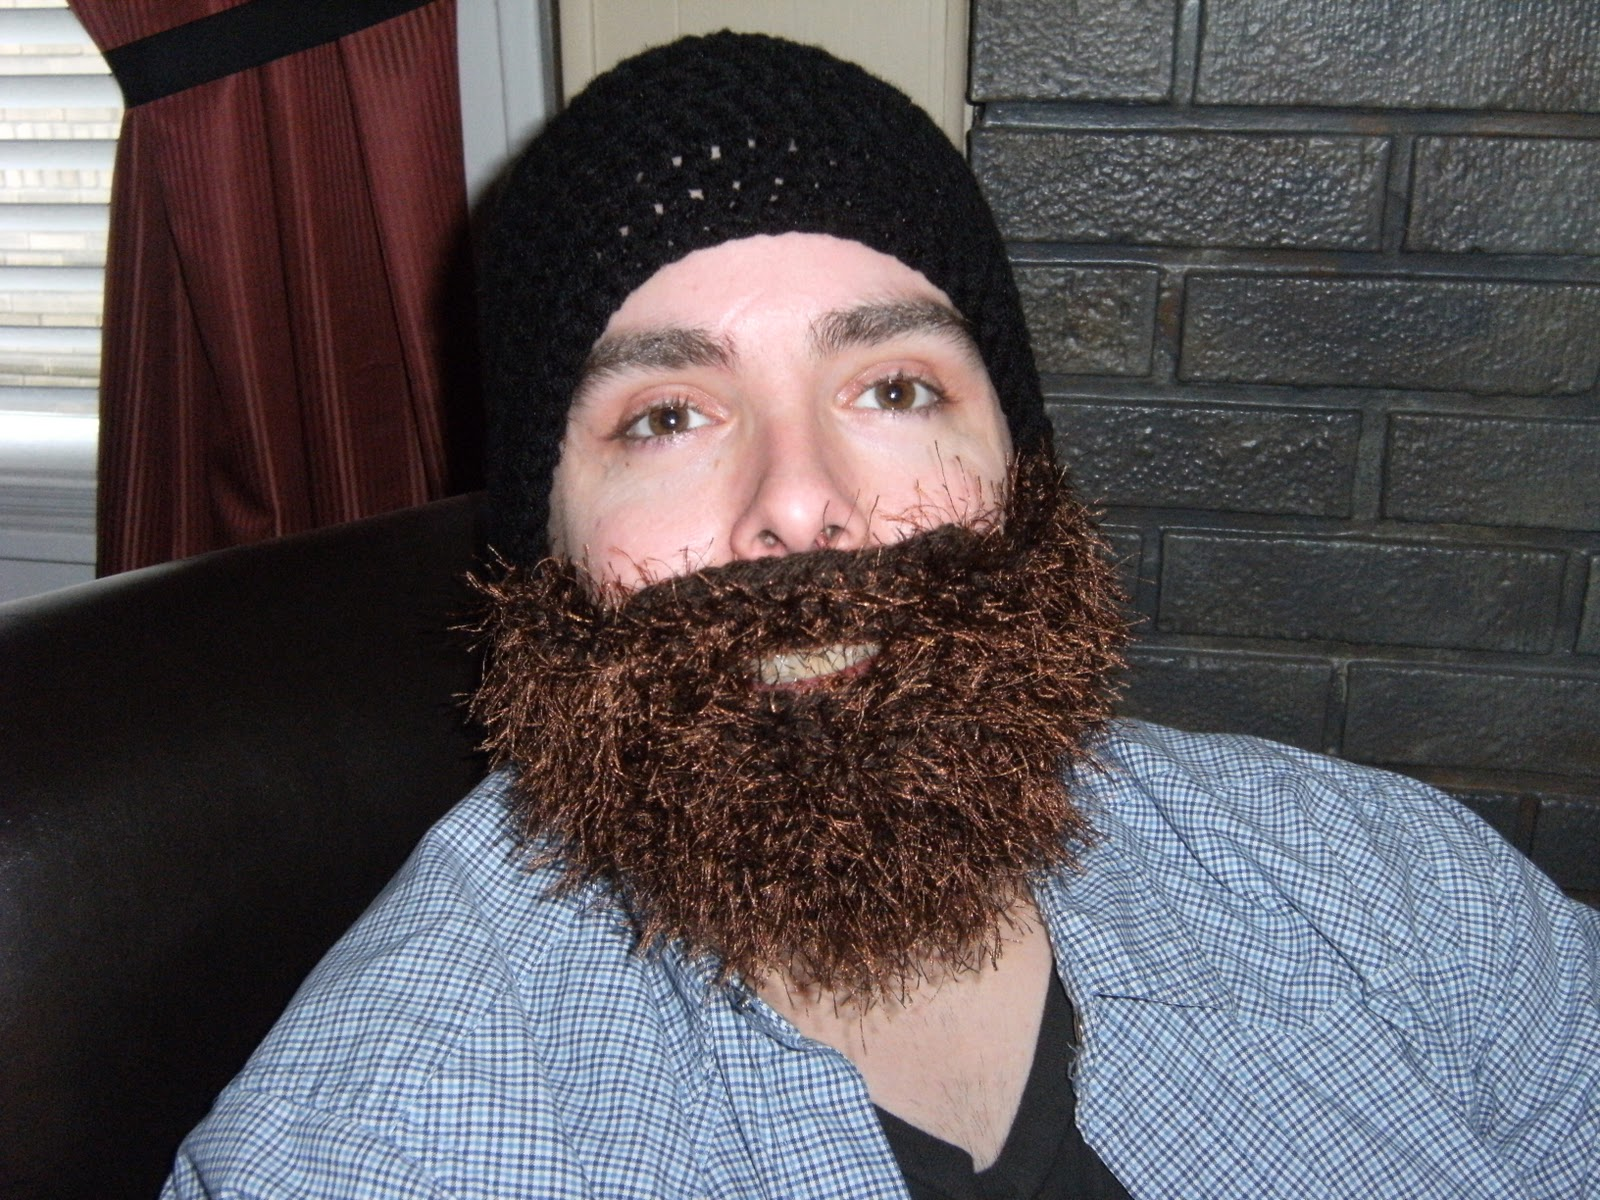 Beanie Hat With Beard Crochet Pattern Free : Projects Around the House: Crochet Bearded Beanie